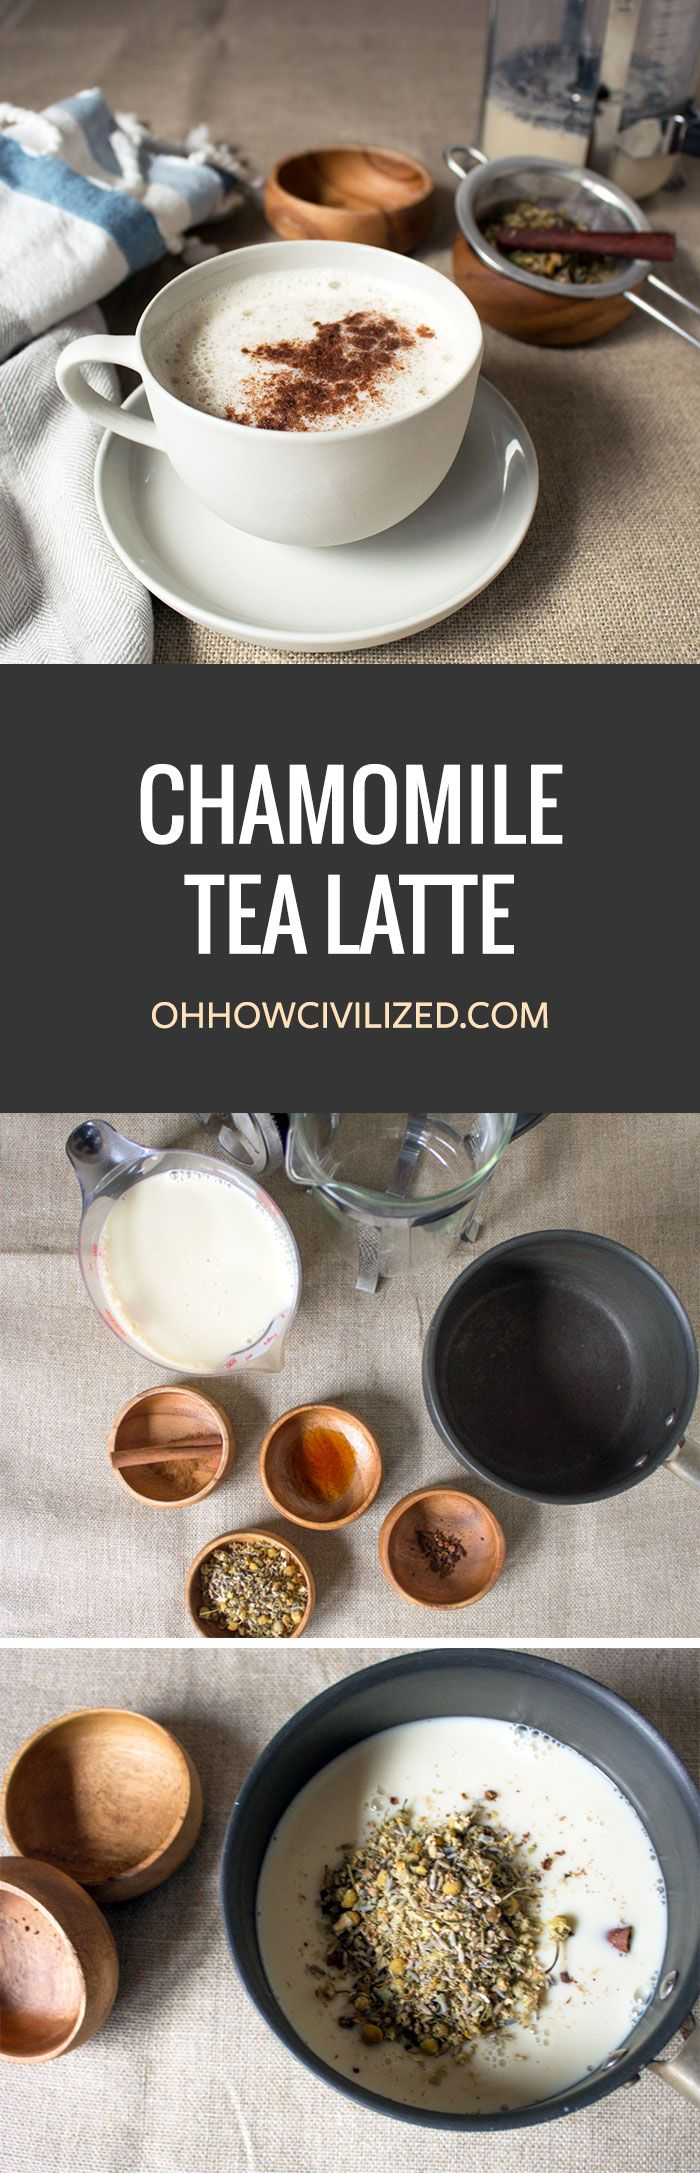 Chamomile Tea Latte